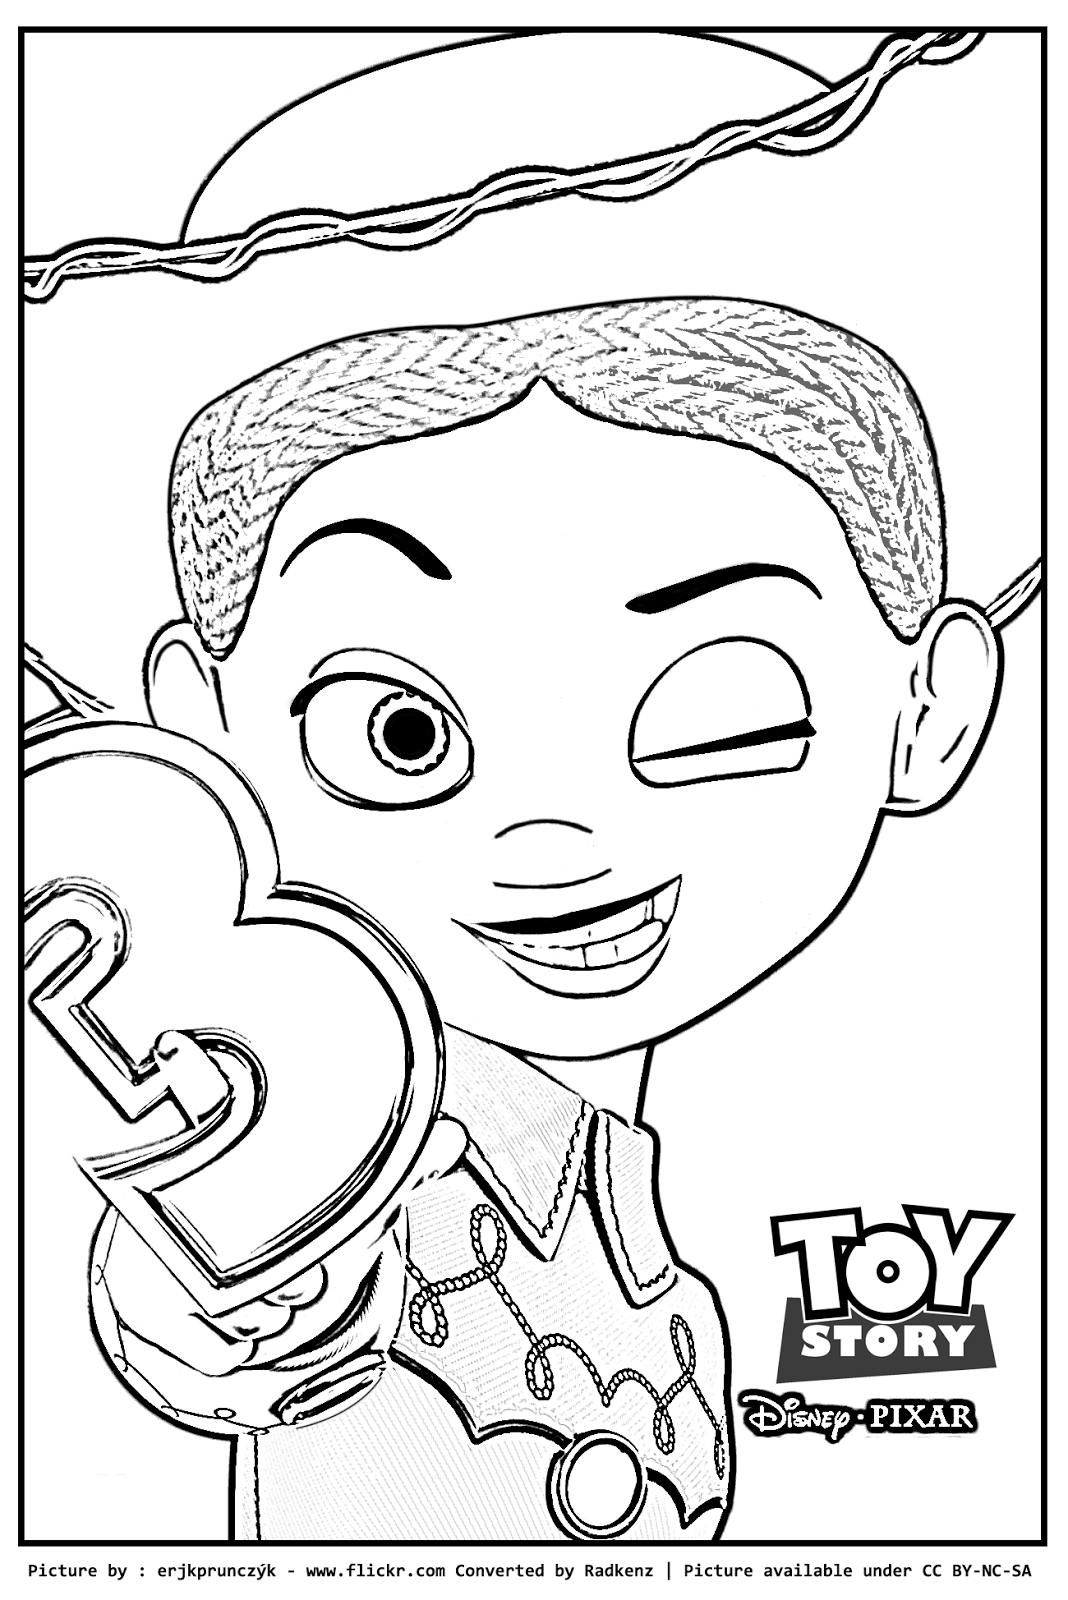 Image Result For T Rex Coloring Page Toy Story Rex